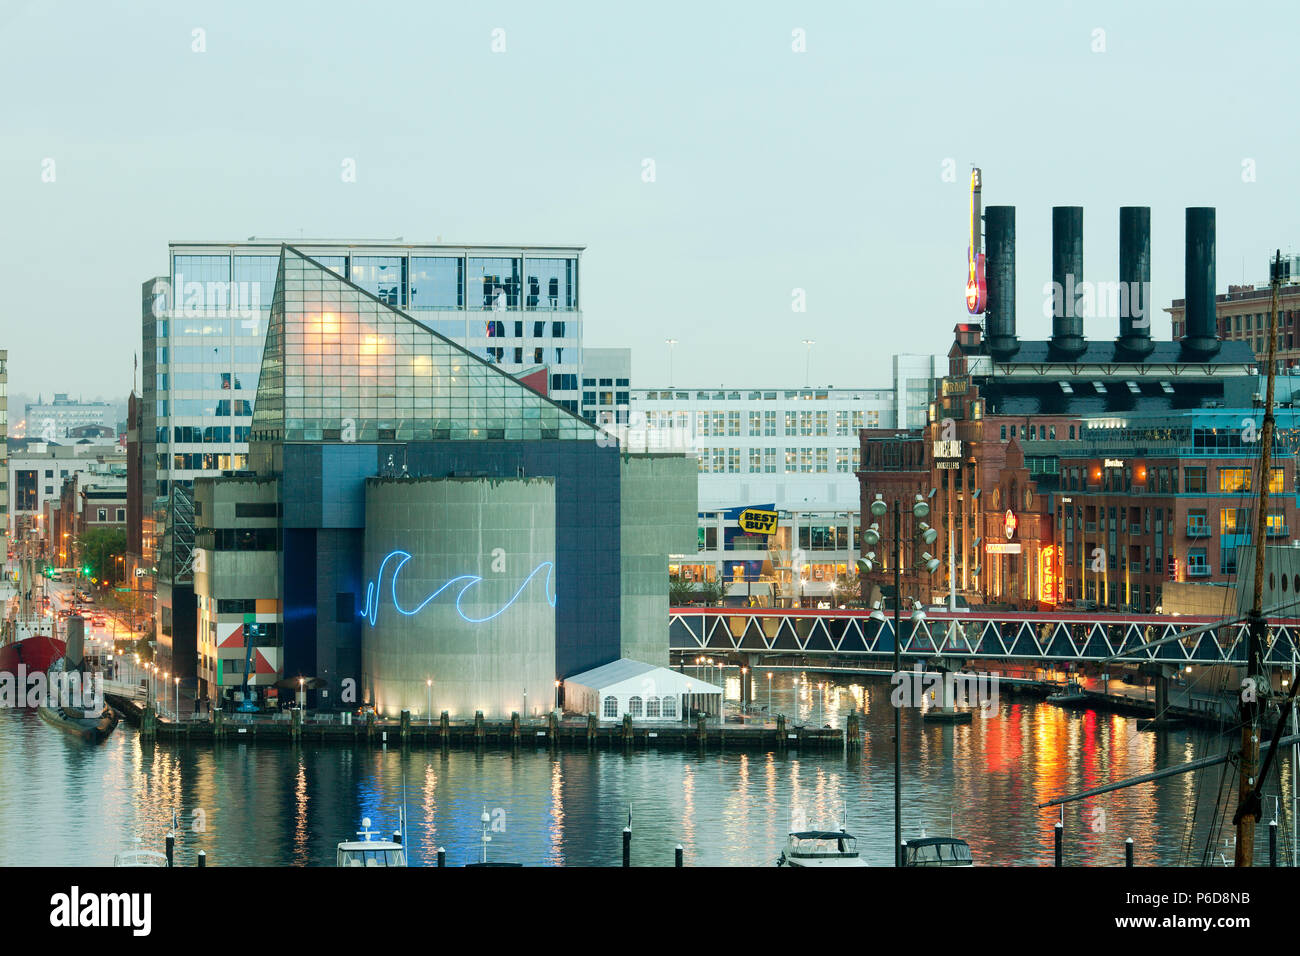 Baltimore, Maryland, United States -  National Aquarium and Power Plant at Inner Harbor. - Stock Image